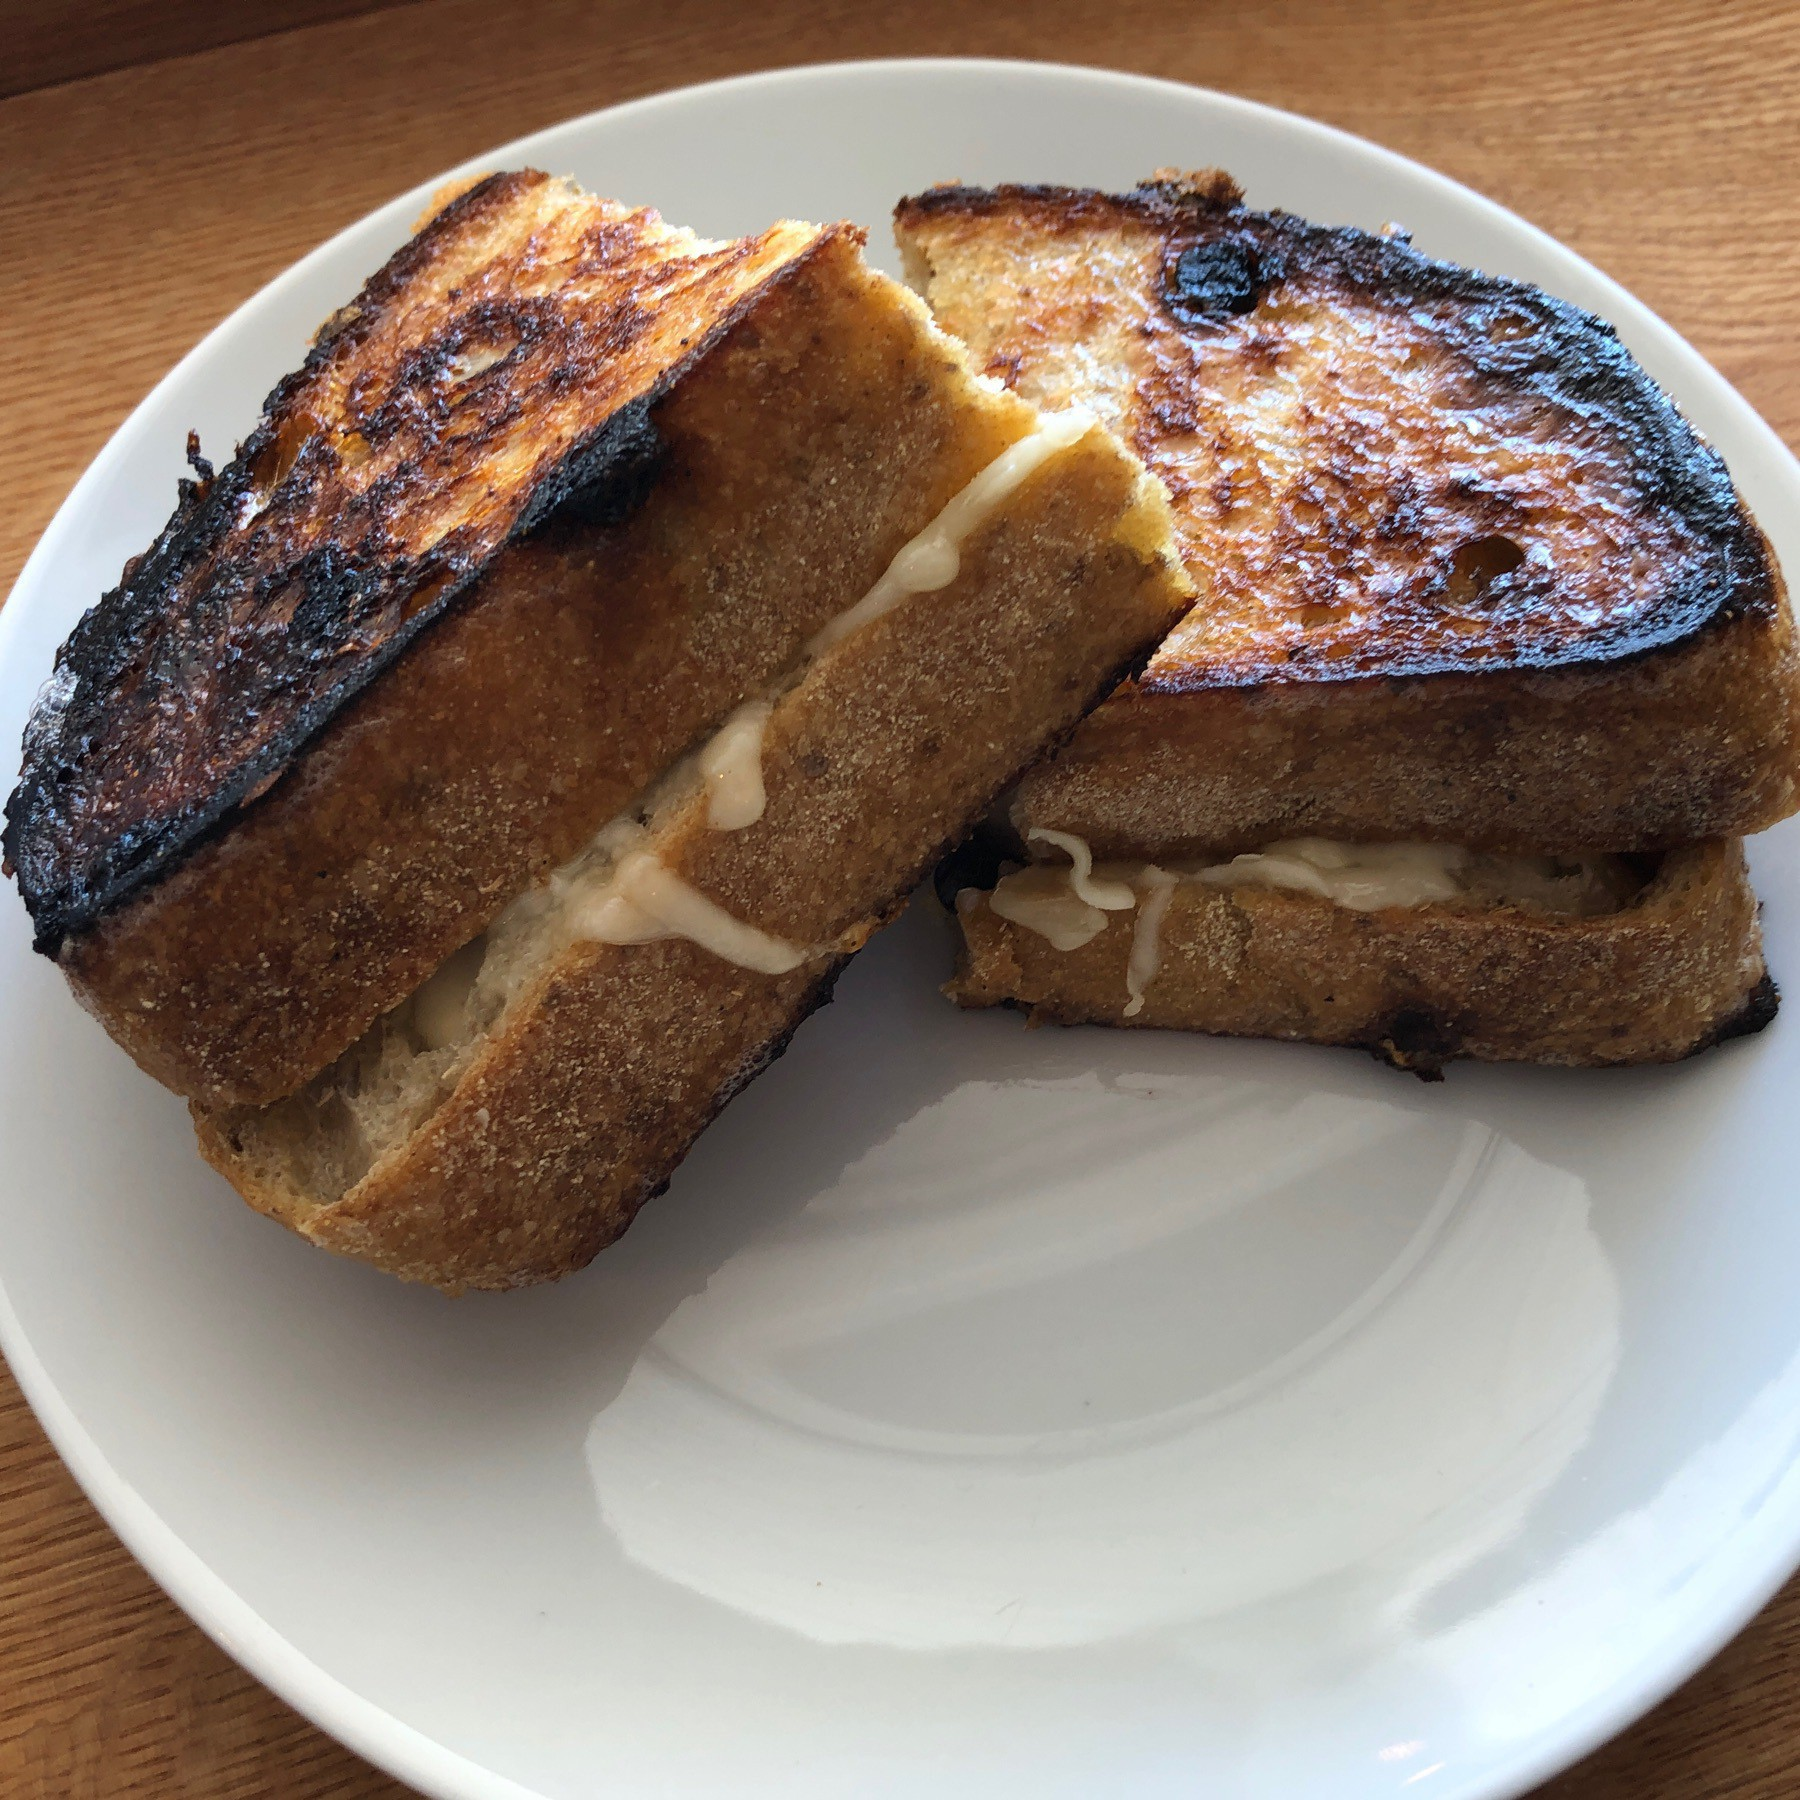 Grilled cheese sandwich on plate.